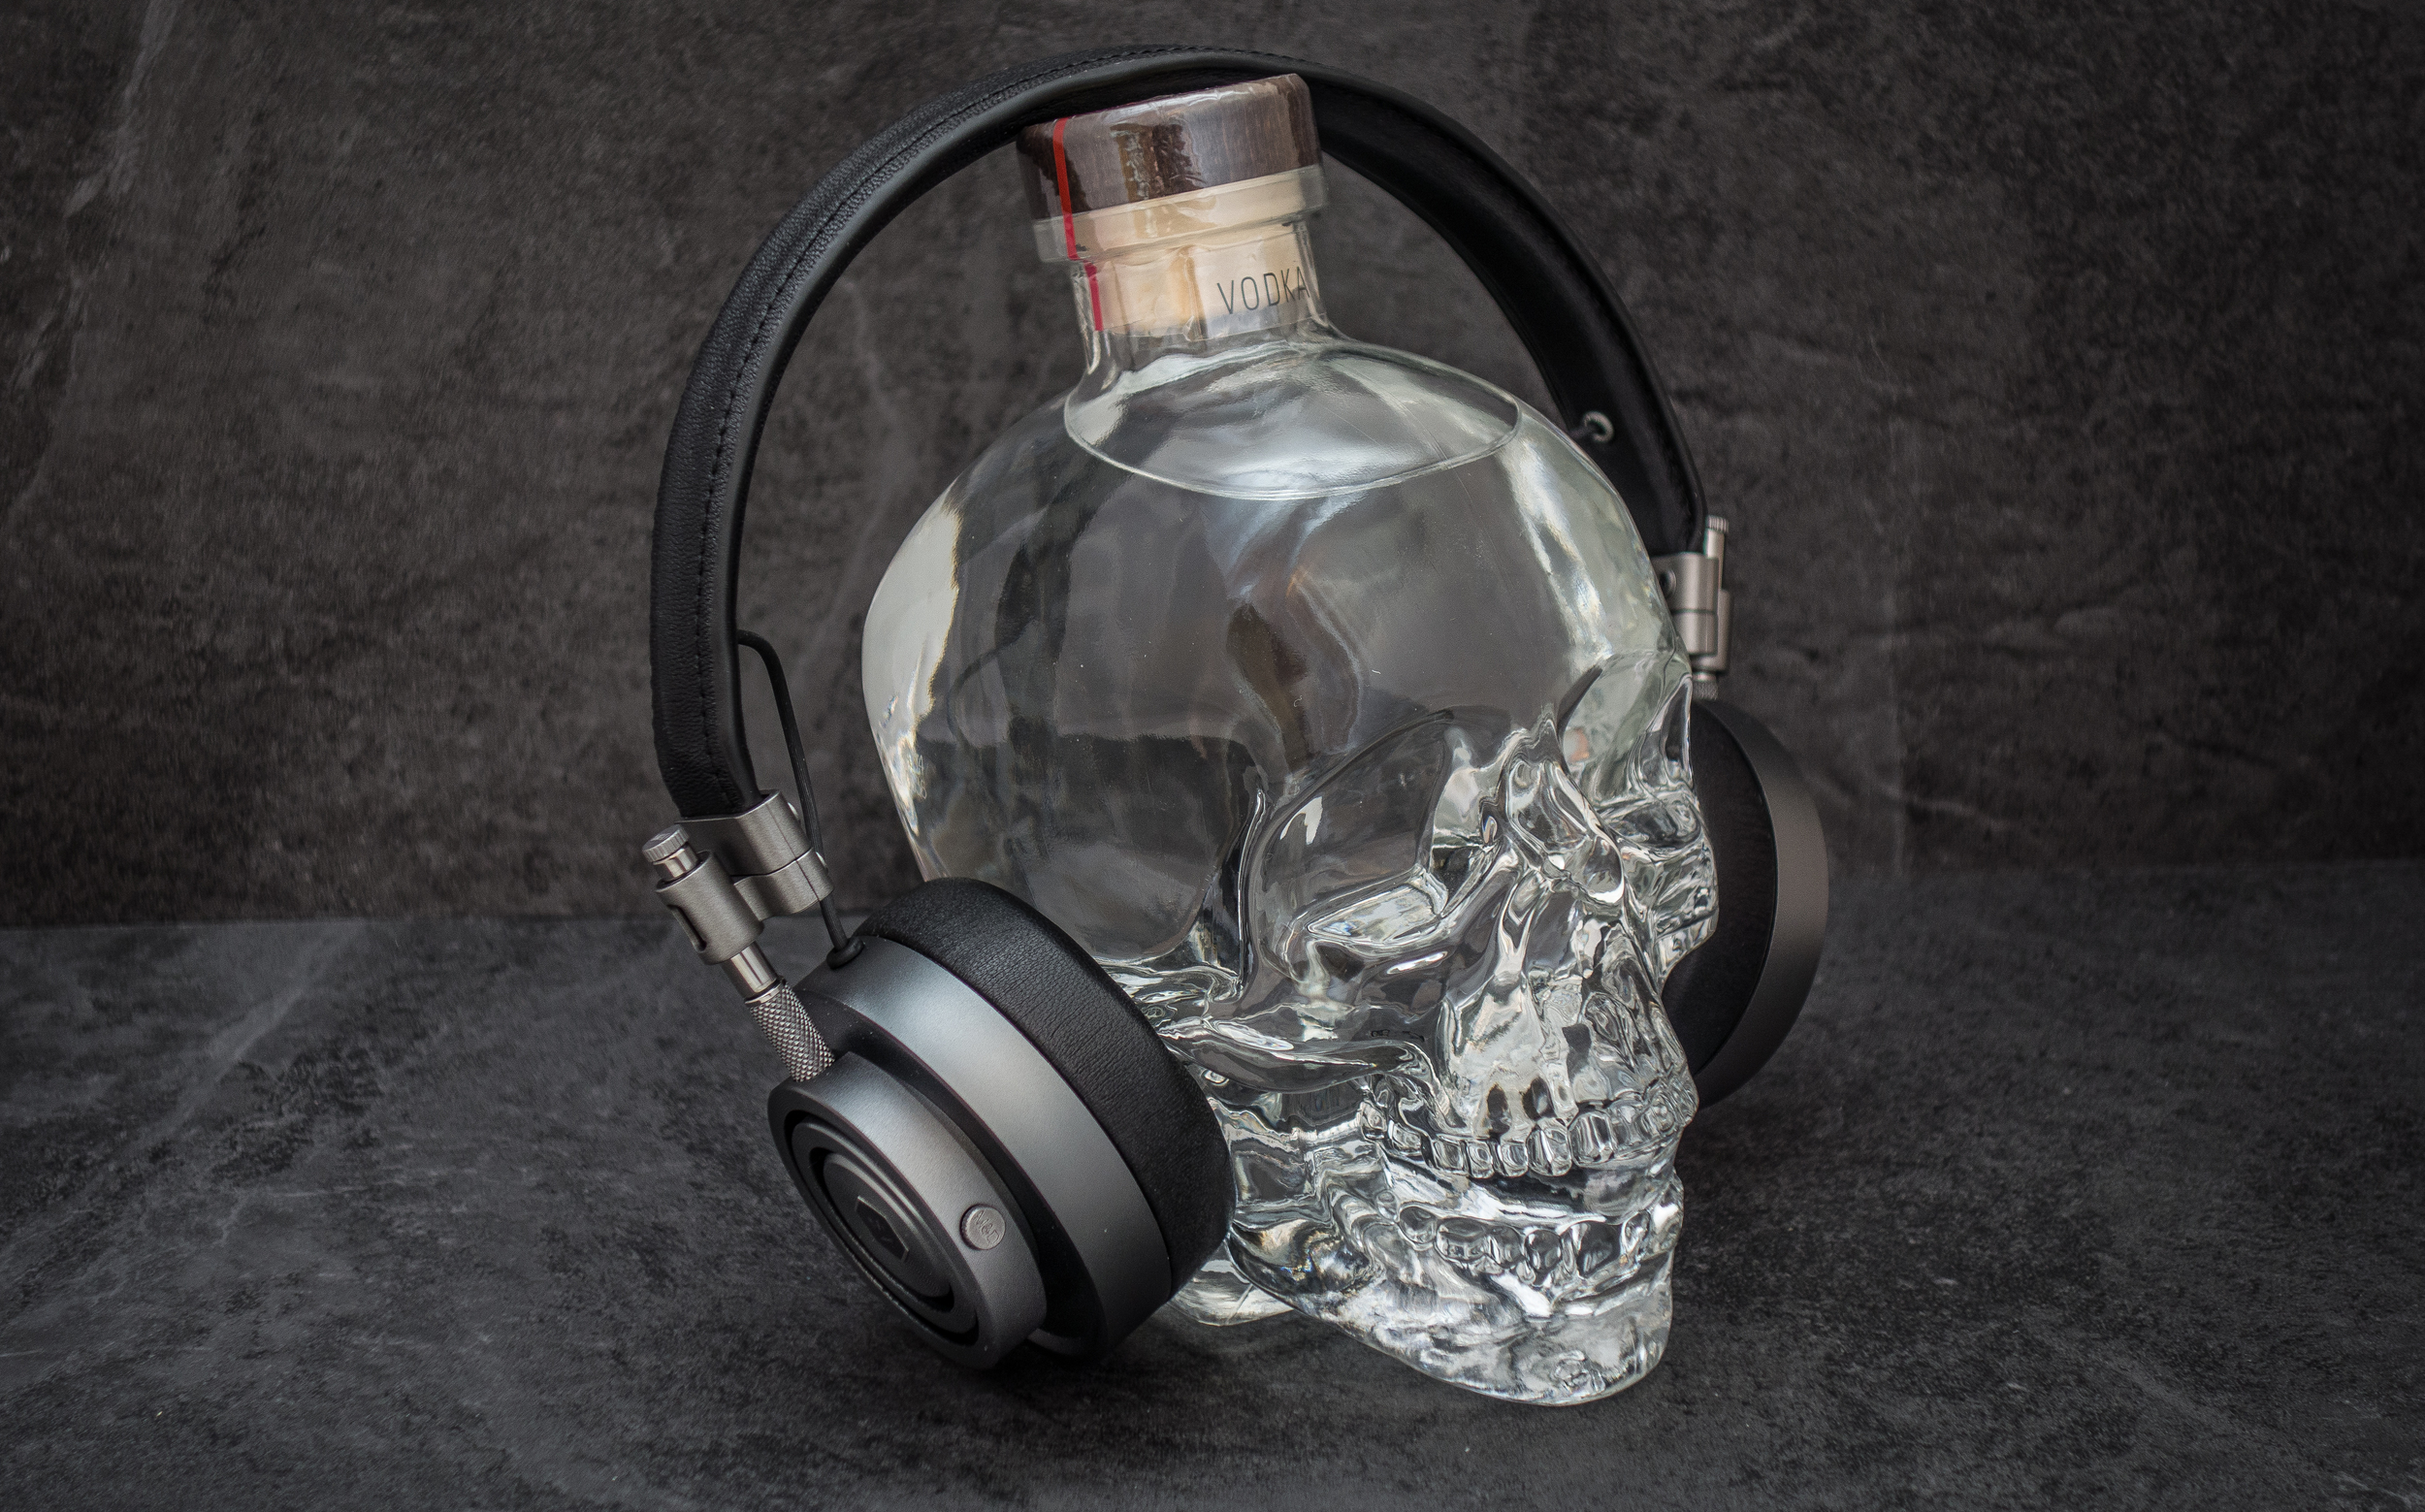 Whats not to like about a bottle of Crystal Skull Vodka and some great sounding headphones.